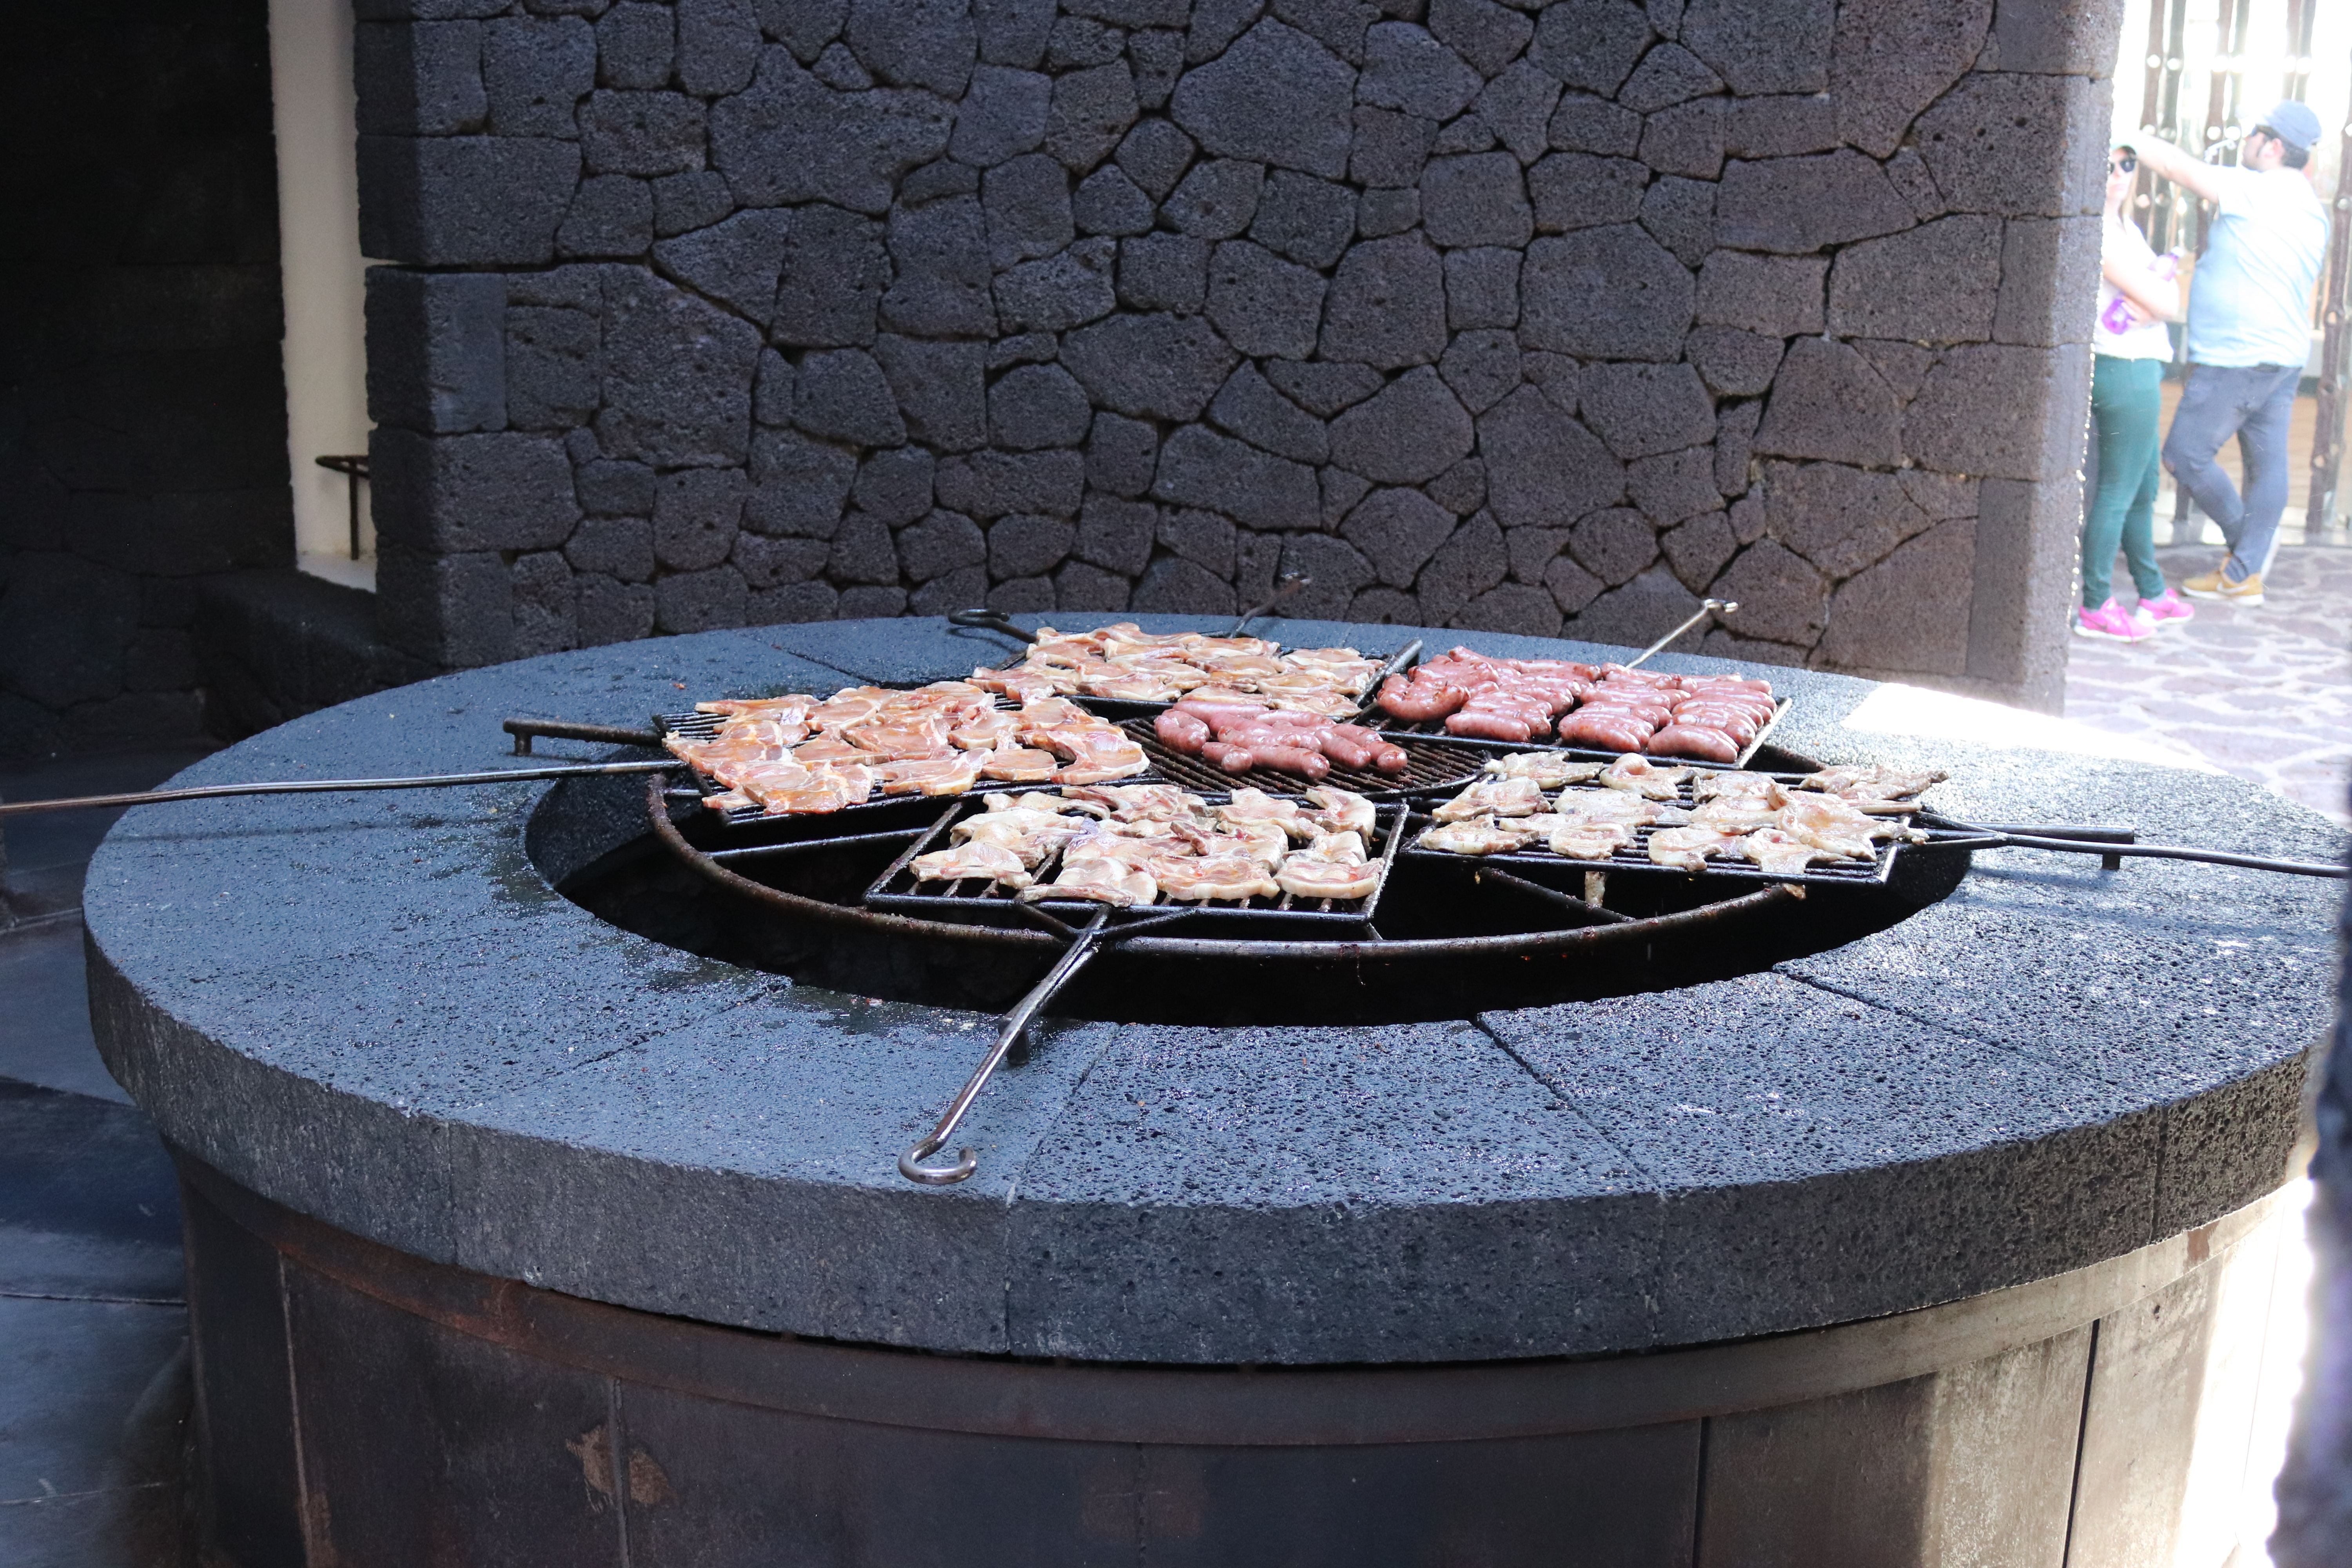 Discovering volcanic grilled chicken in Restaurant El Diablo, Lanzarote